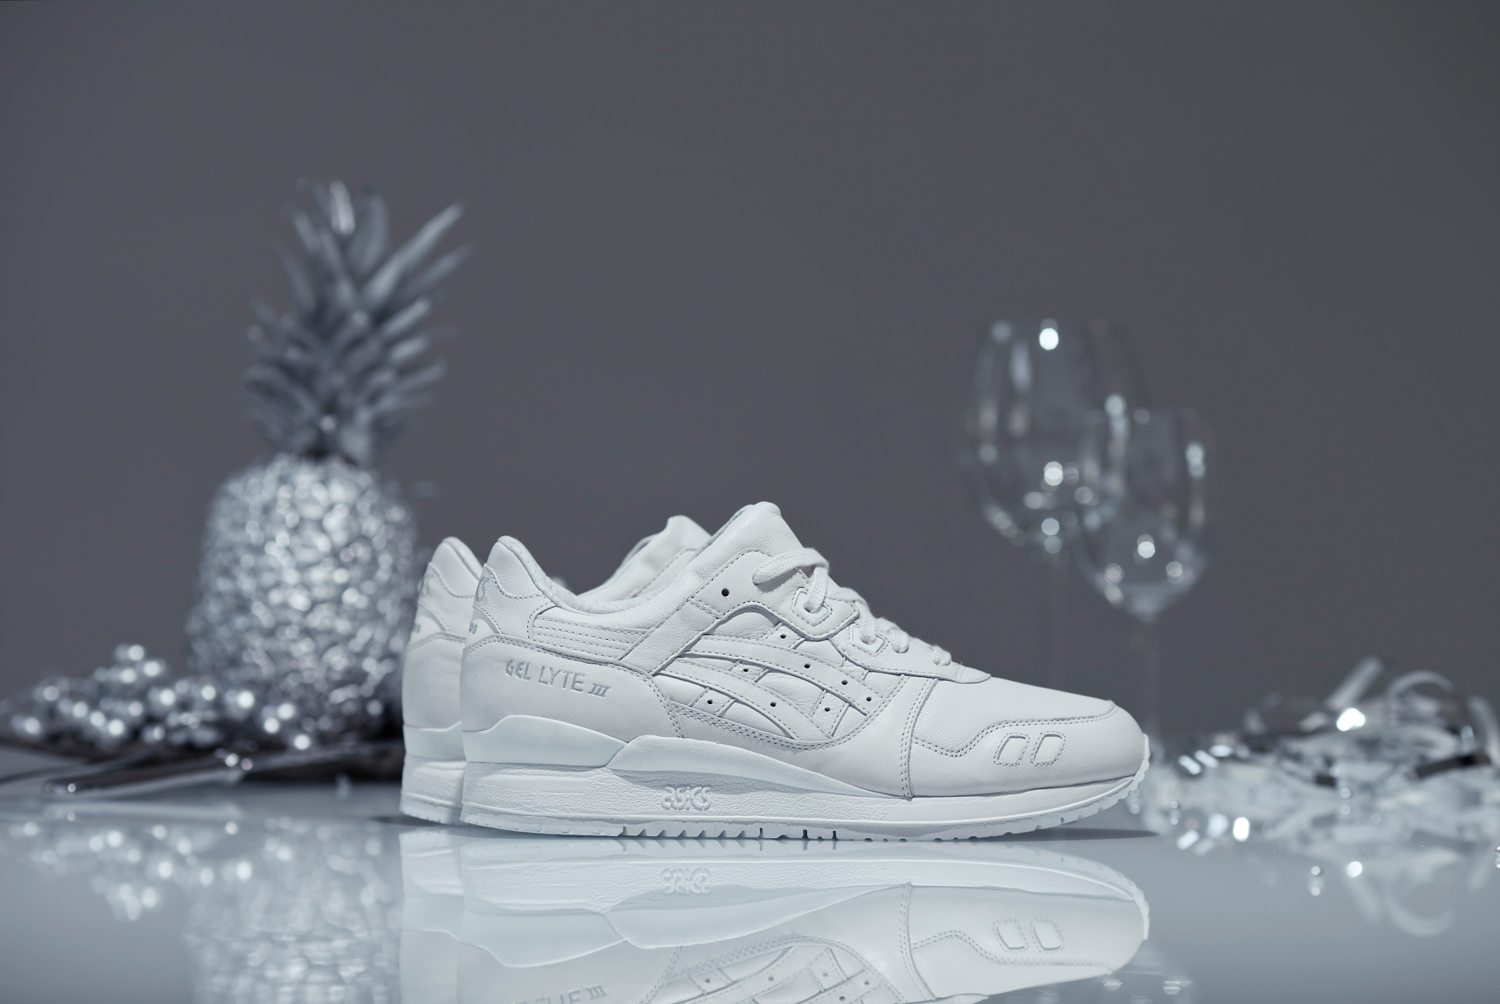 Atmos x Asics Gel Lyte III B Day Dinner 2